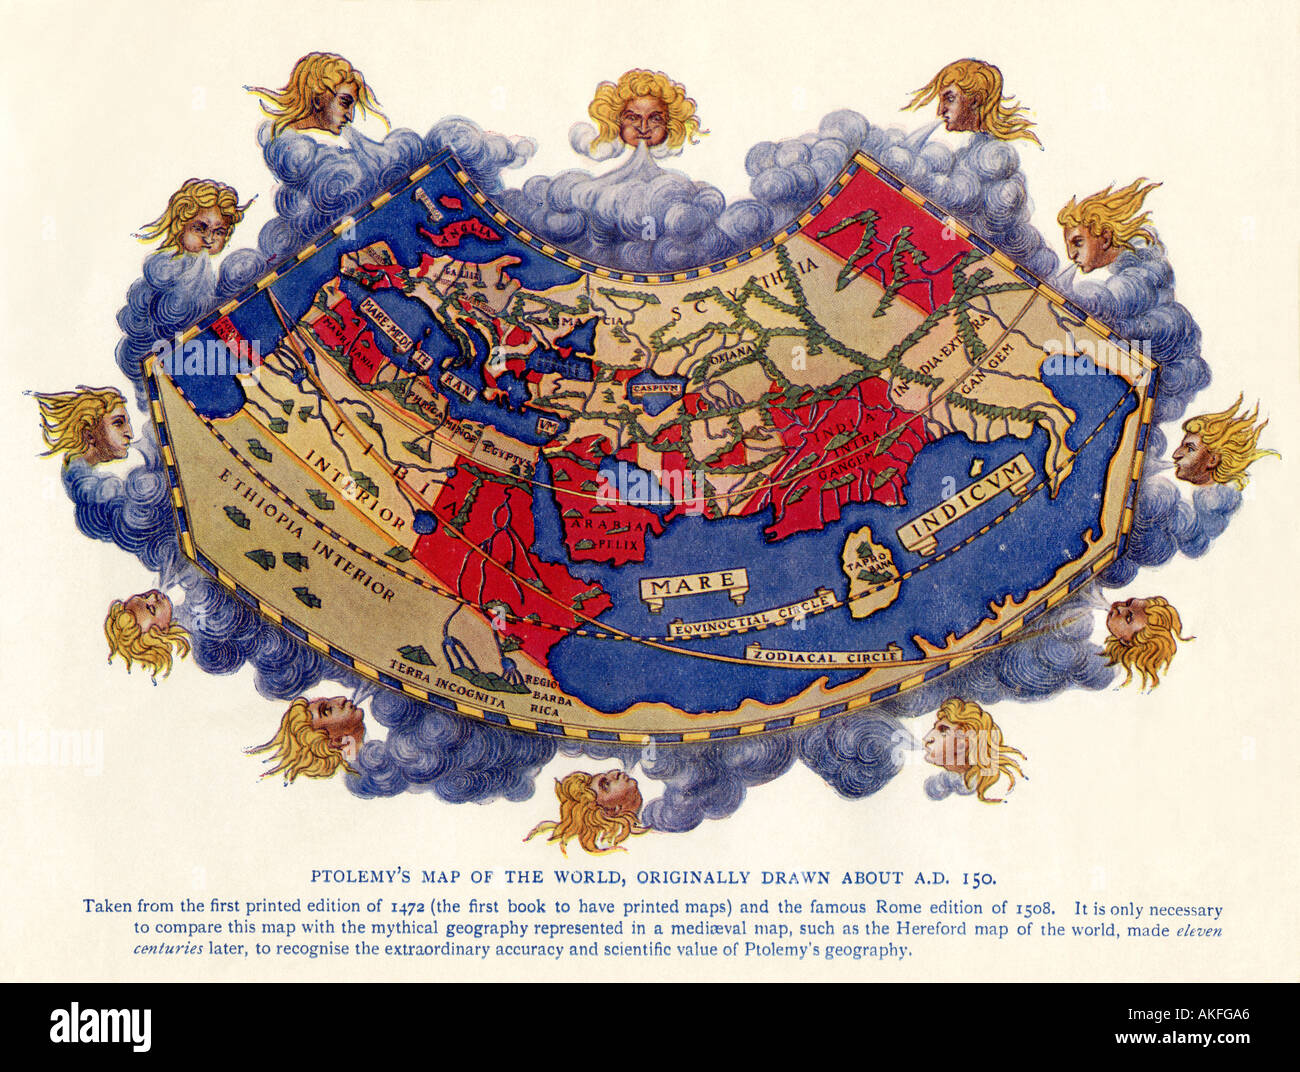 Ptolemy world map circa 150 AD from the edition of 1472. Color halftone - Stock Image